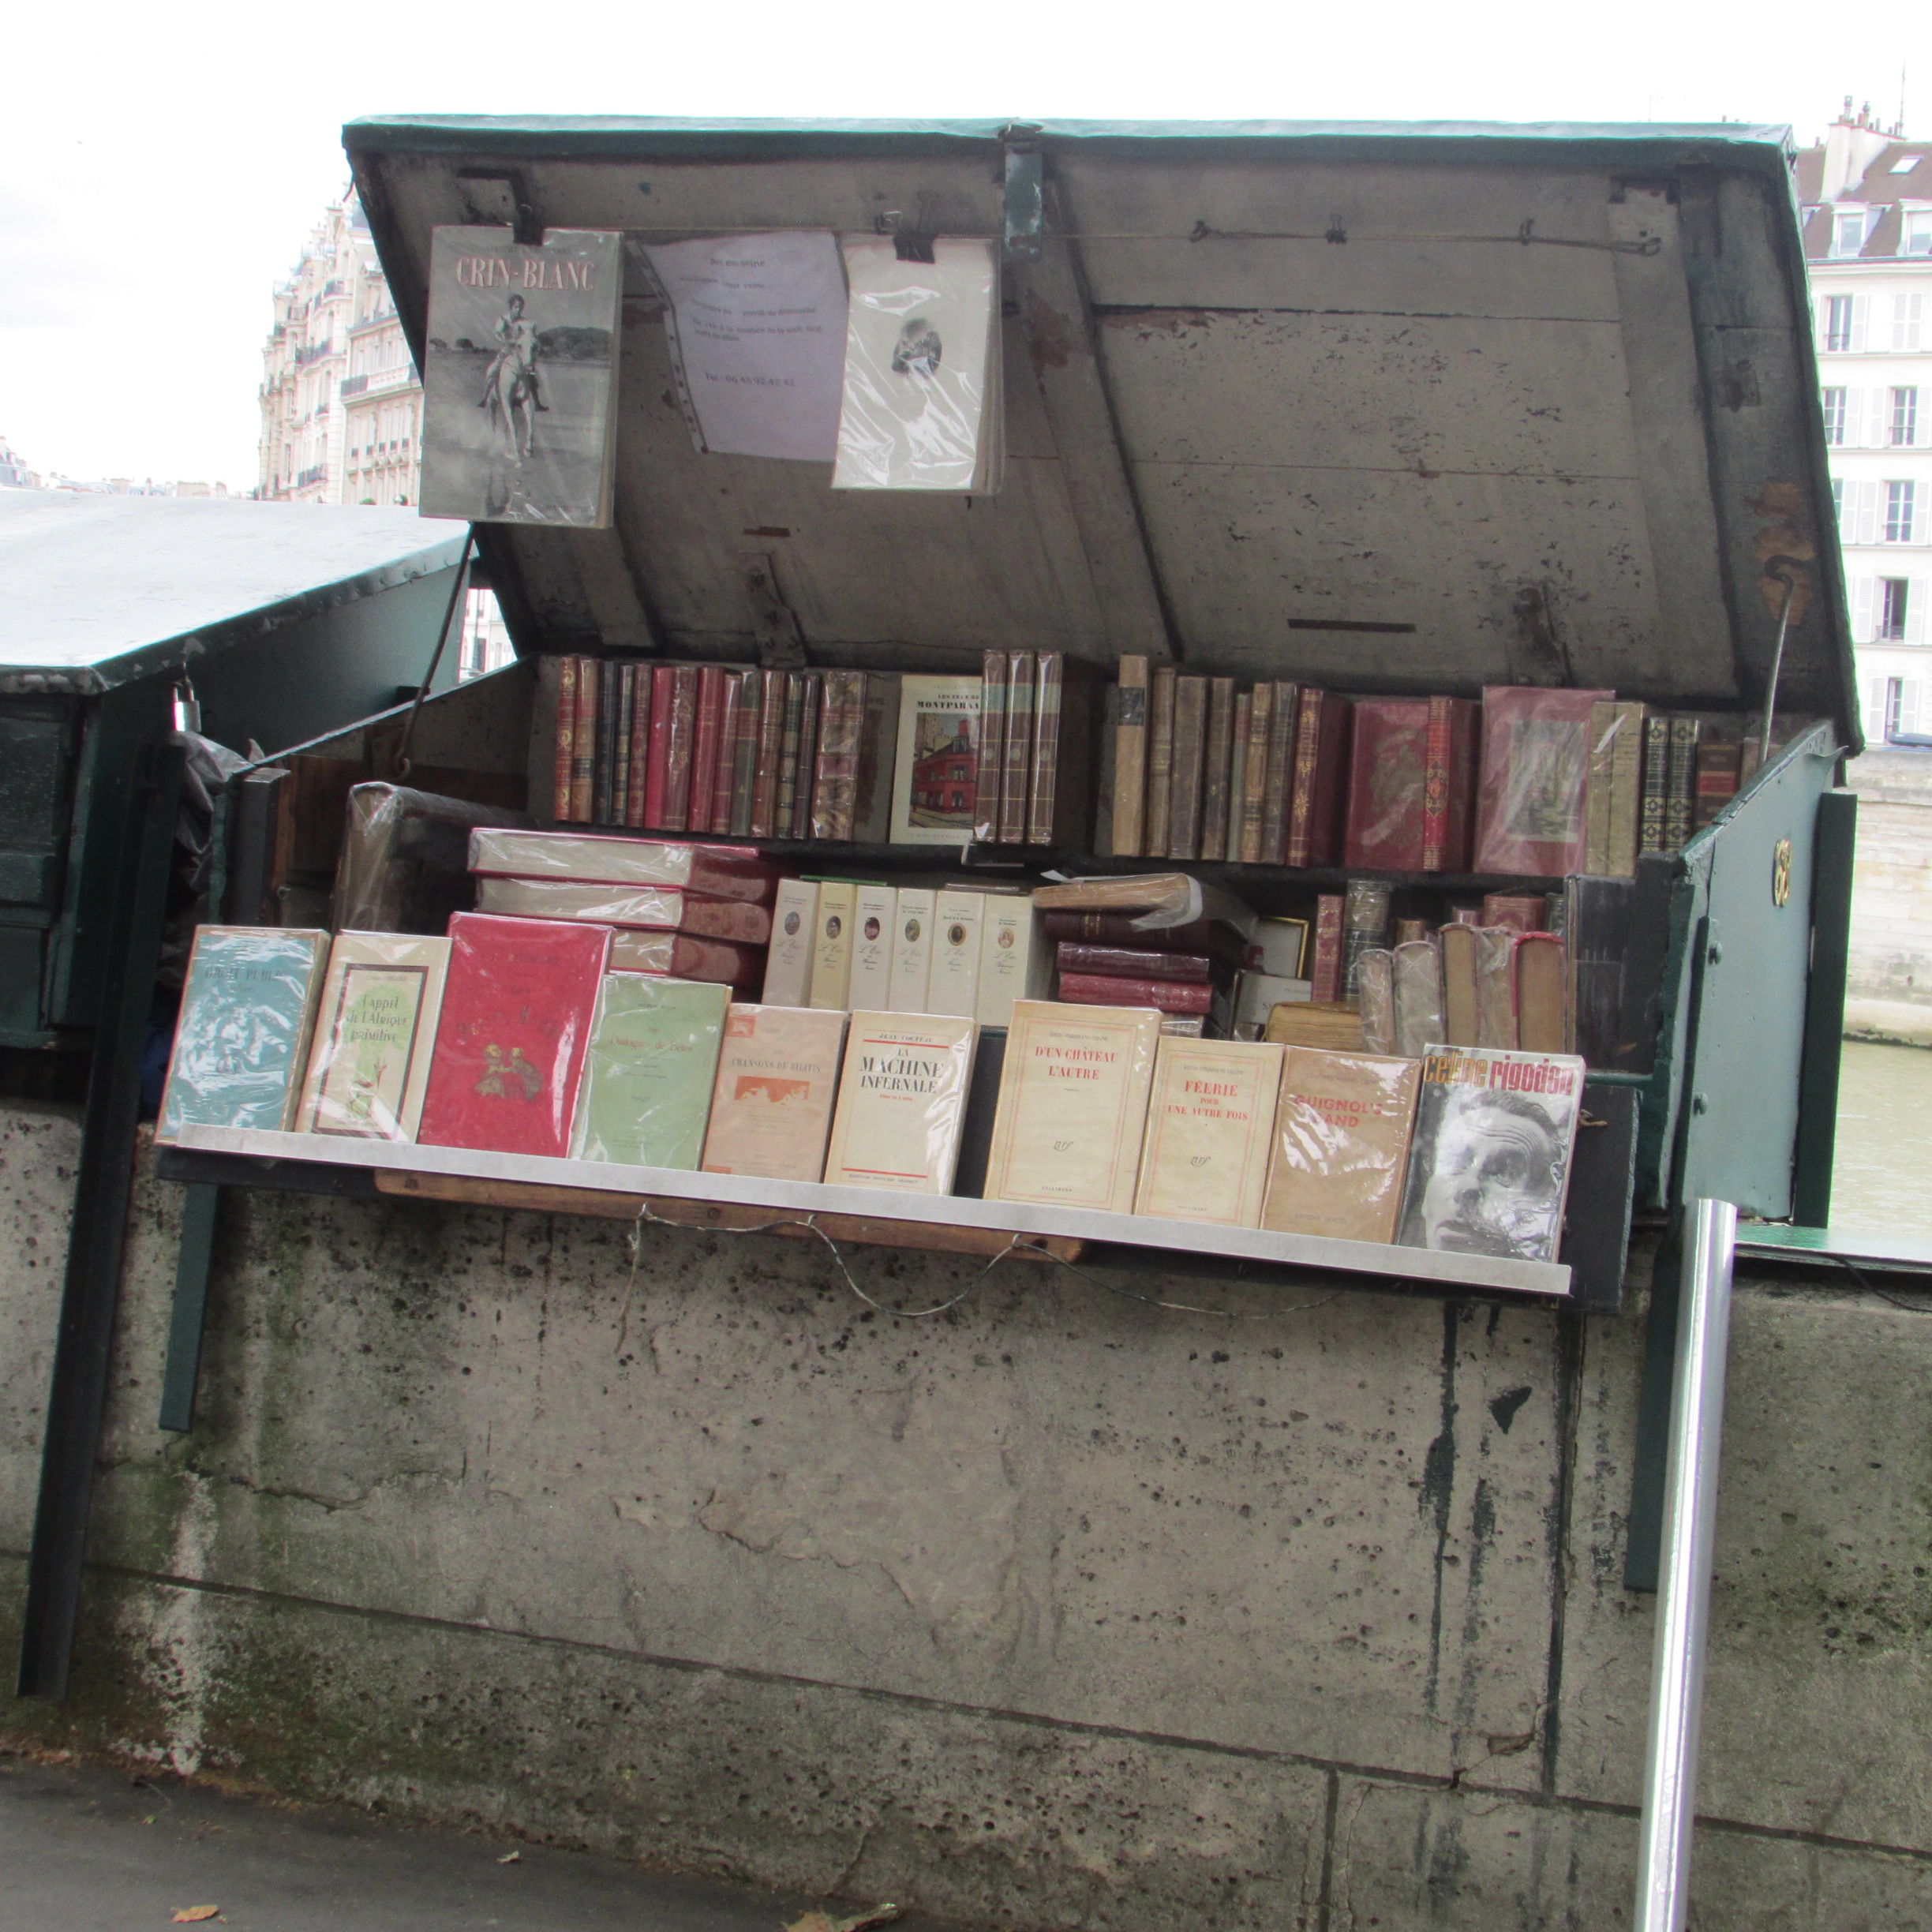 Bouquinistes along the Seine. Paris, France. Where it all began. This is where so many years ago I developed my love for being a bookseller. My dream would be to have one of these little green bookstands someday. But my French would need to improve. Vivre le libre!